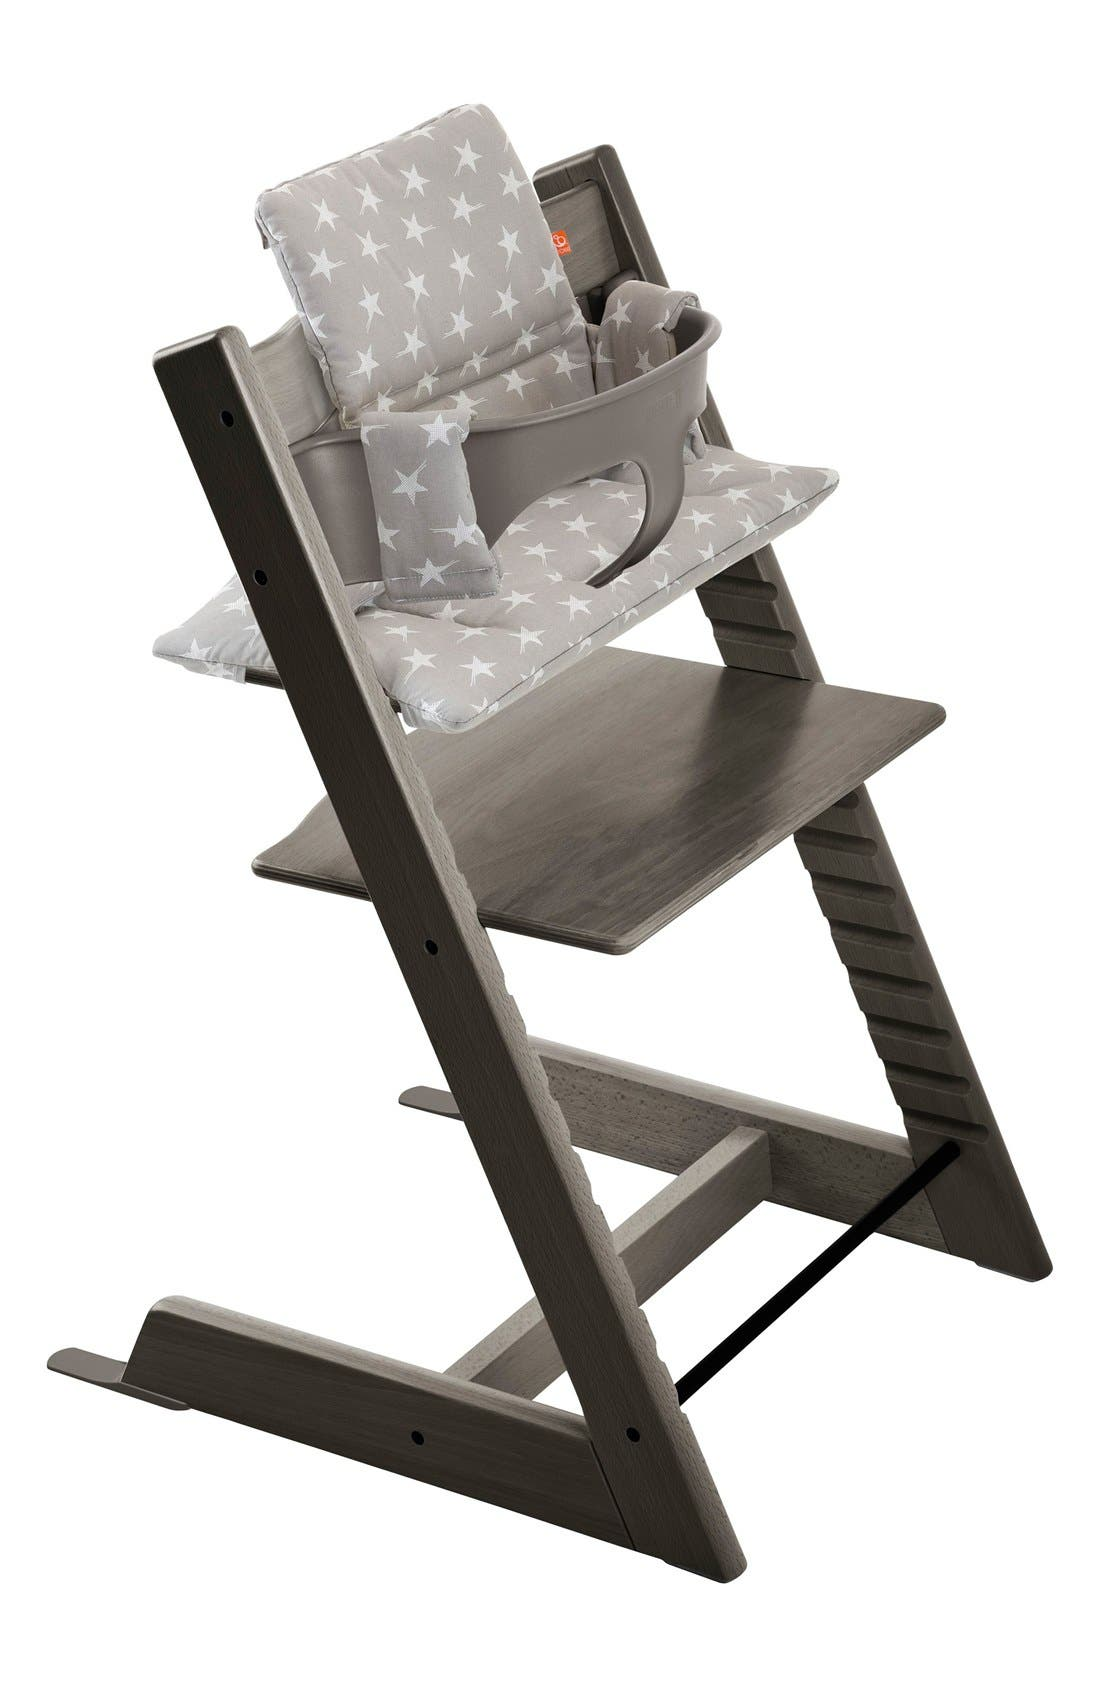 high chairs, covers & booster seats for tables   nordstrom